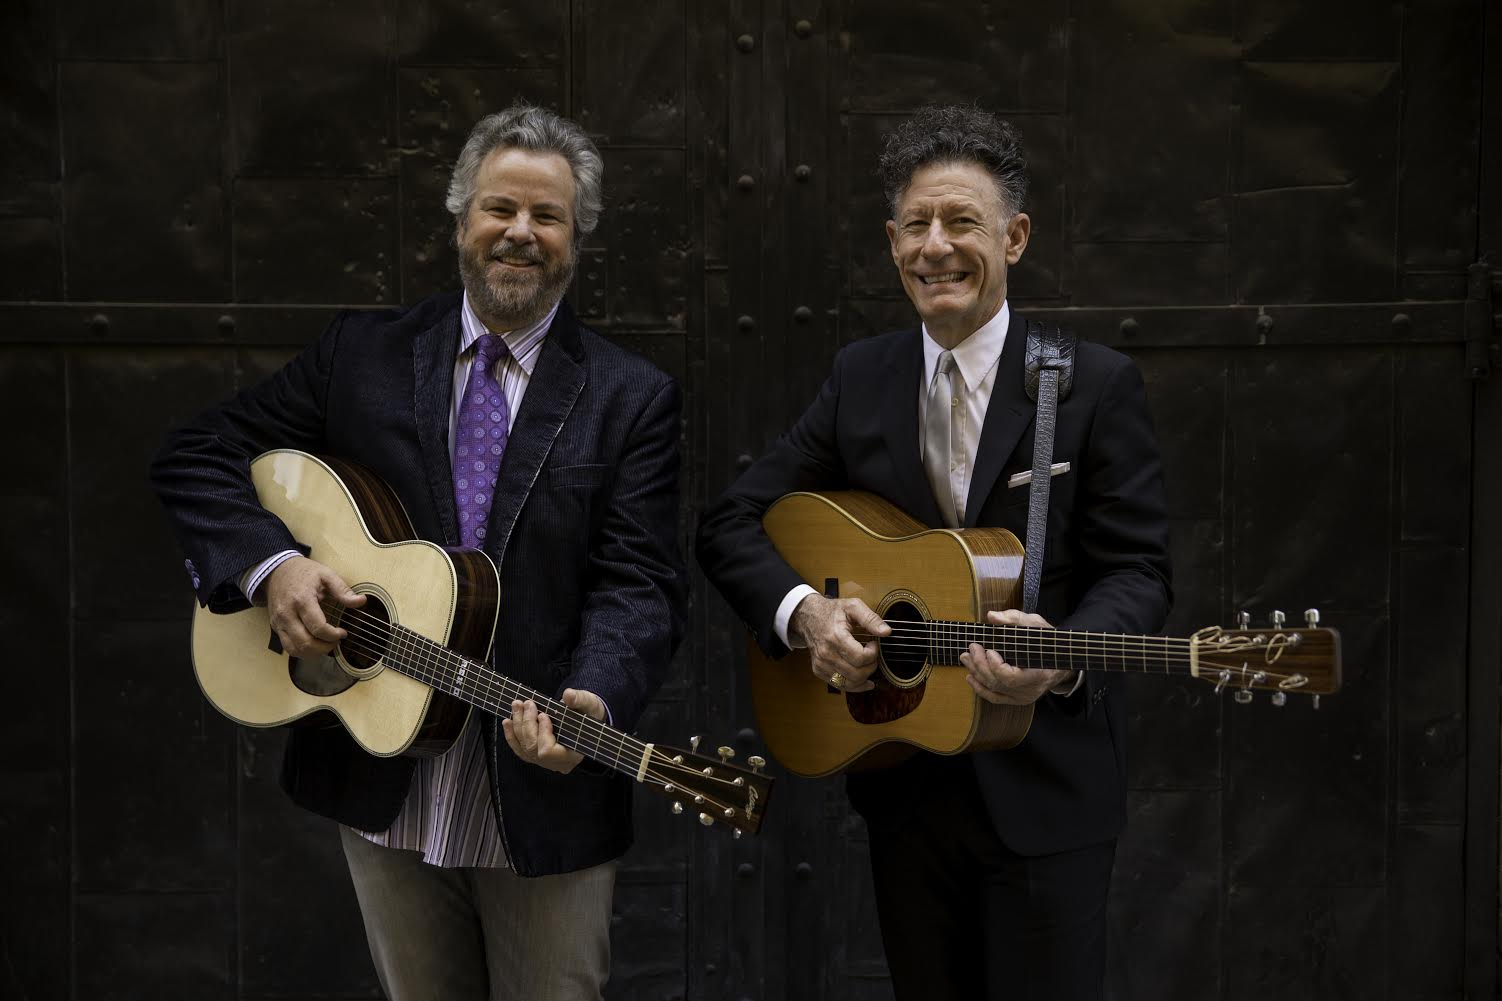 AUSTIN, TX - MAY 22: Robert Earl Keen and Lyle Lovett, photographed at the Paramount Theatre in Austin, Texas on May 22, 2013. Photograph © 2013 Darren Carroll